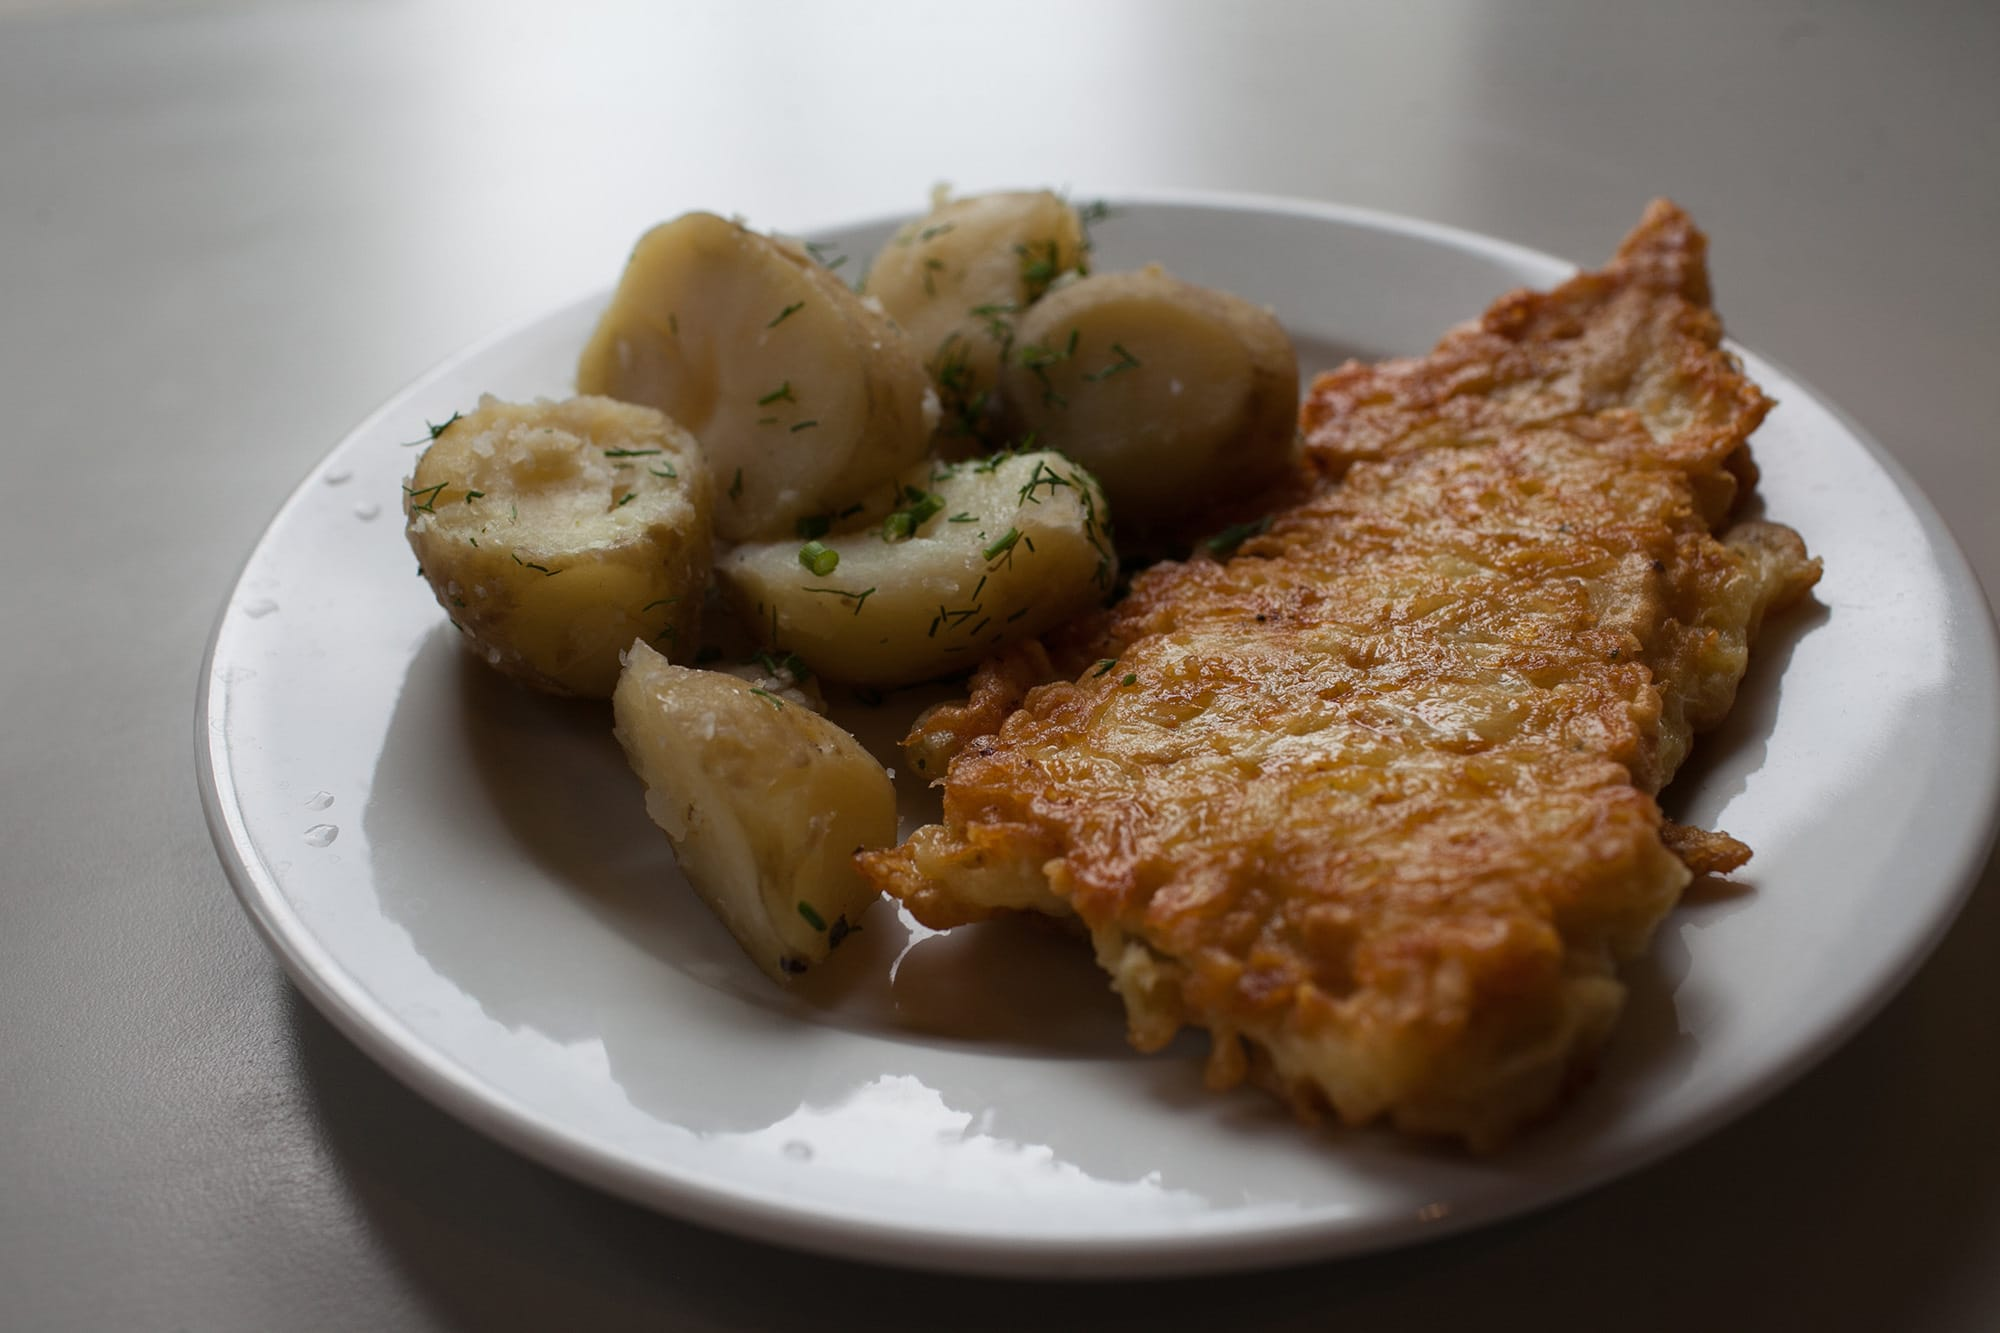 Fried fish in Warsaw, Poland.